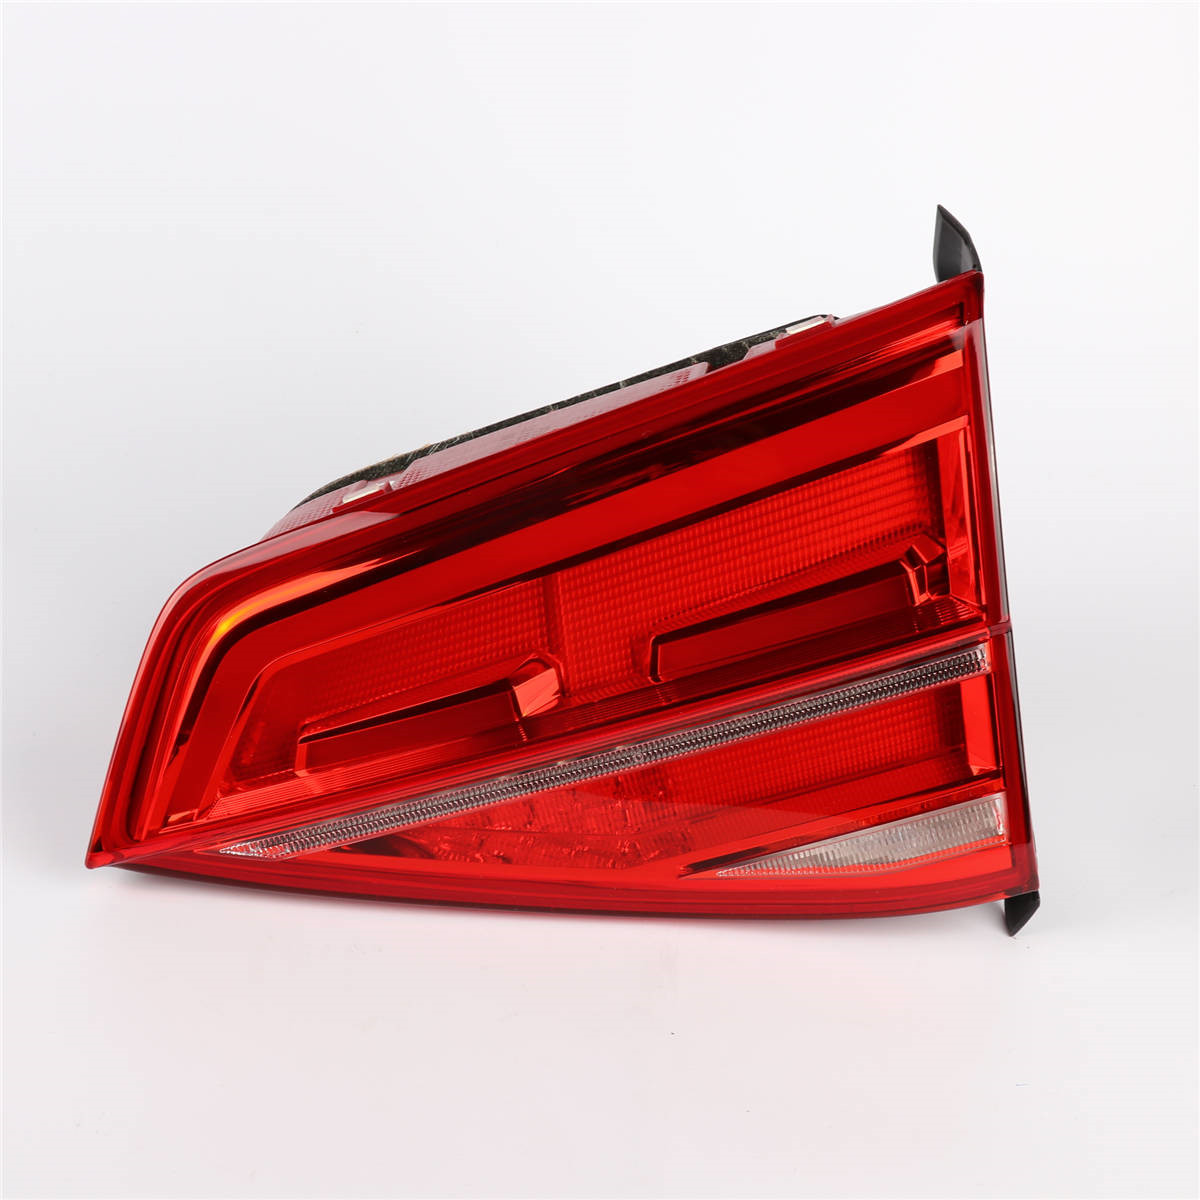 OEM 1Pcs Left Side Red Color 16D 945 307 LED Light Tail Lights Rear Lamp For VW Volkswagen Jetta GLI MK6 2015-2019 цена